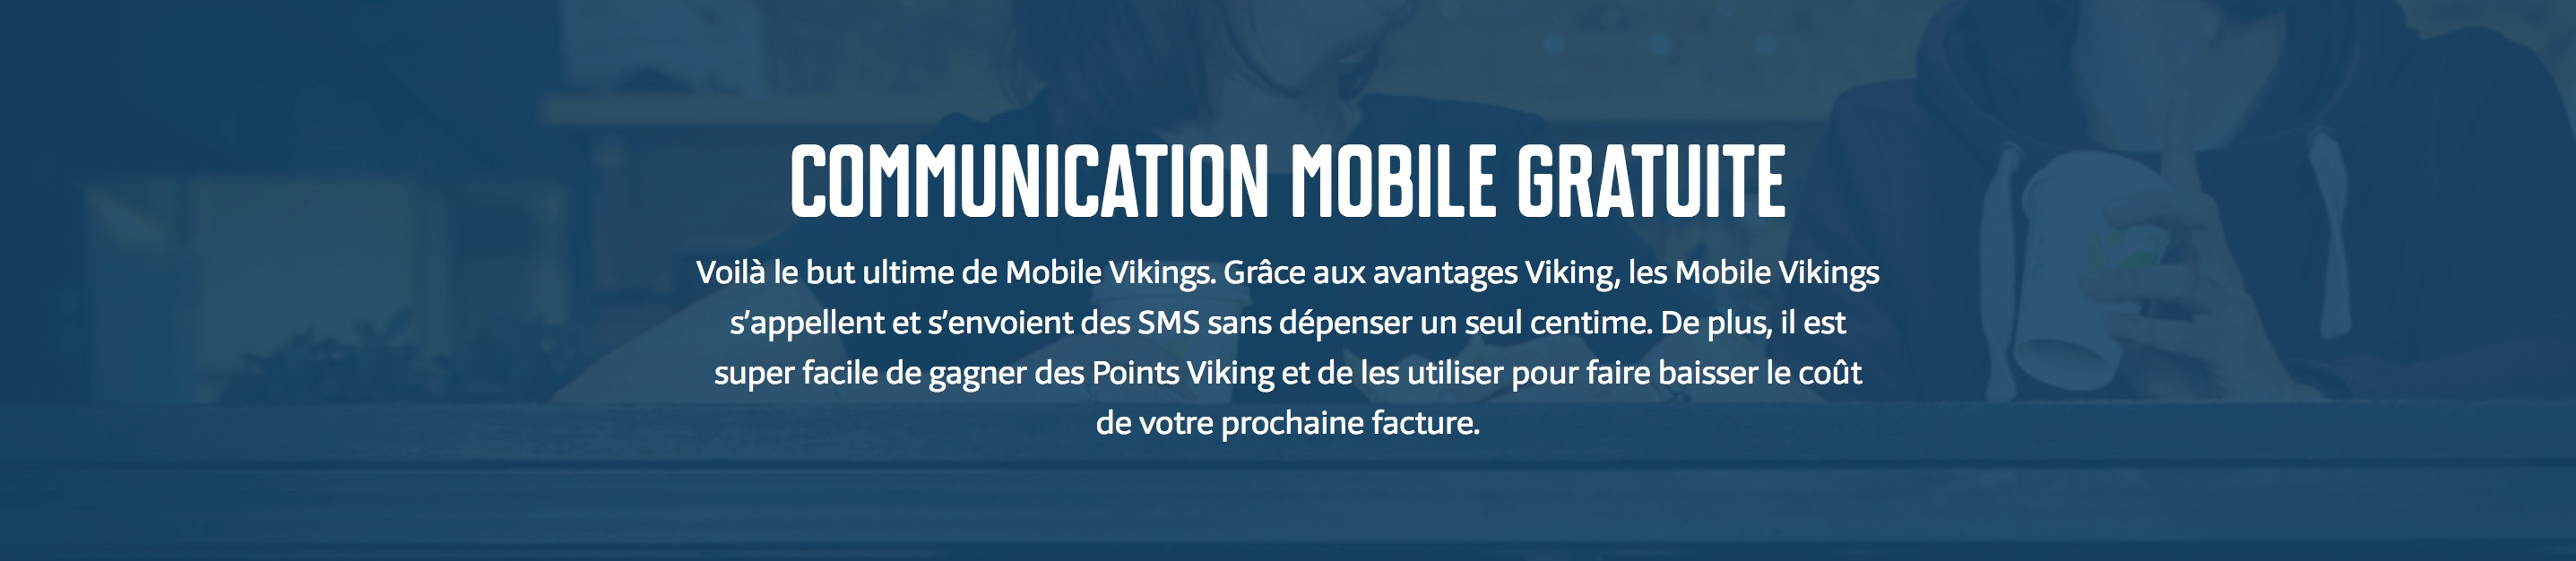 abonnement gsm mobile viking